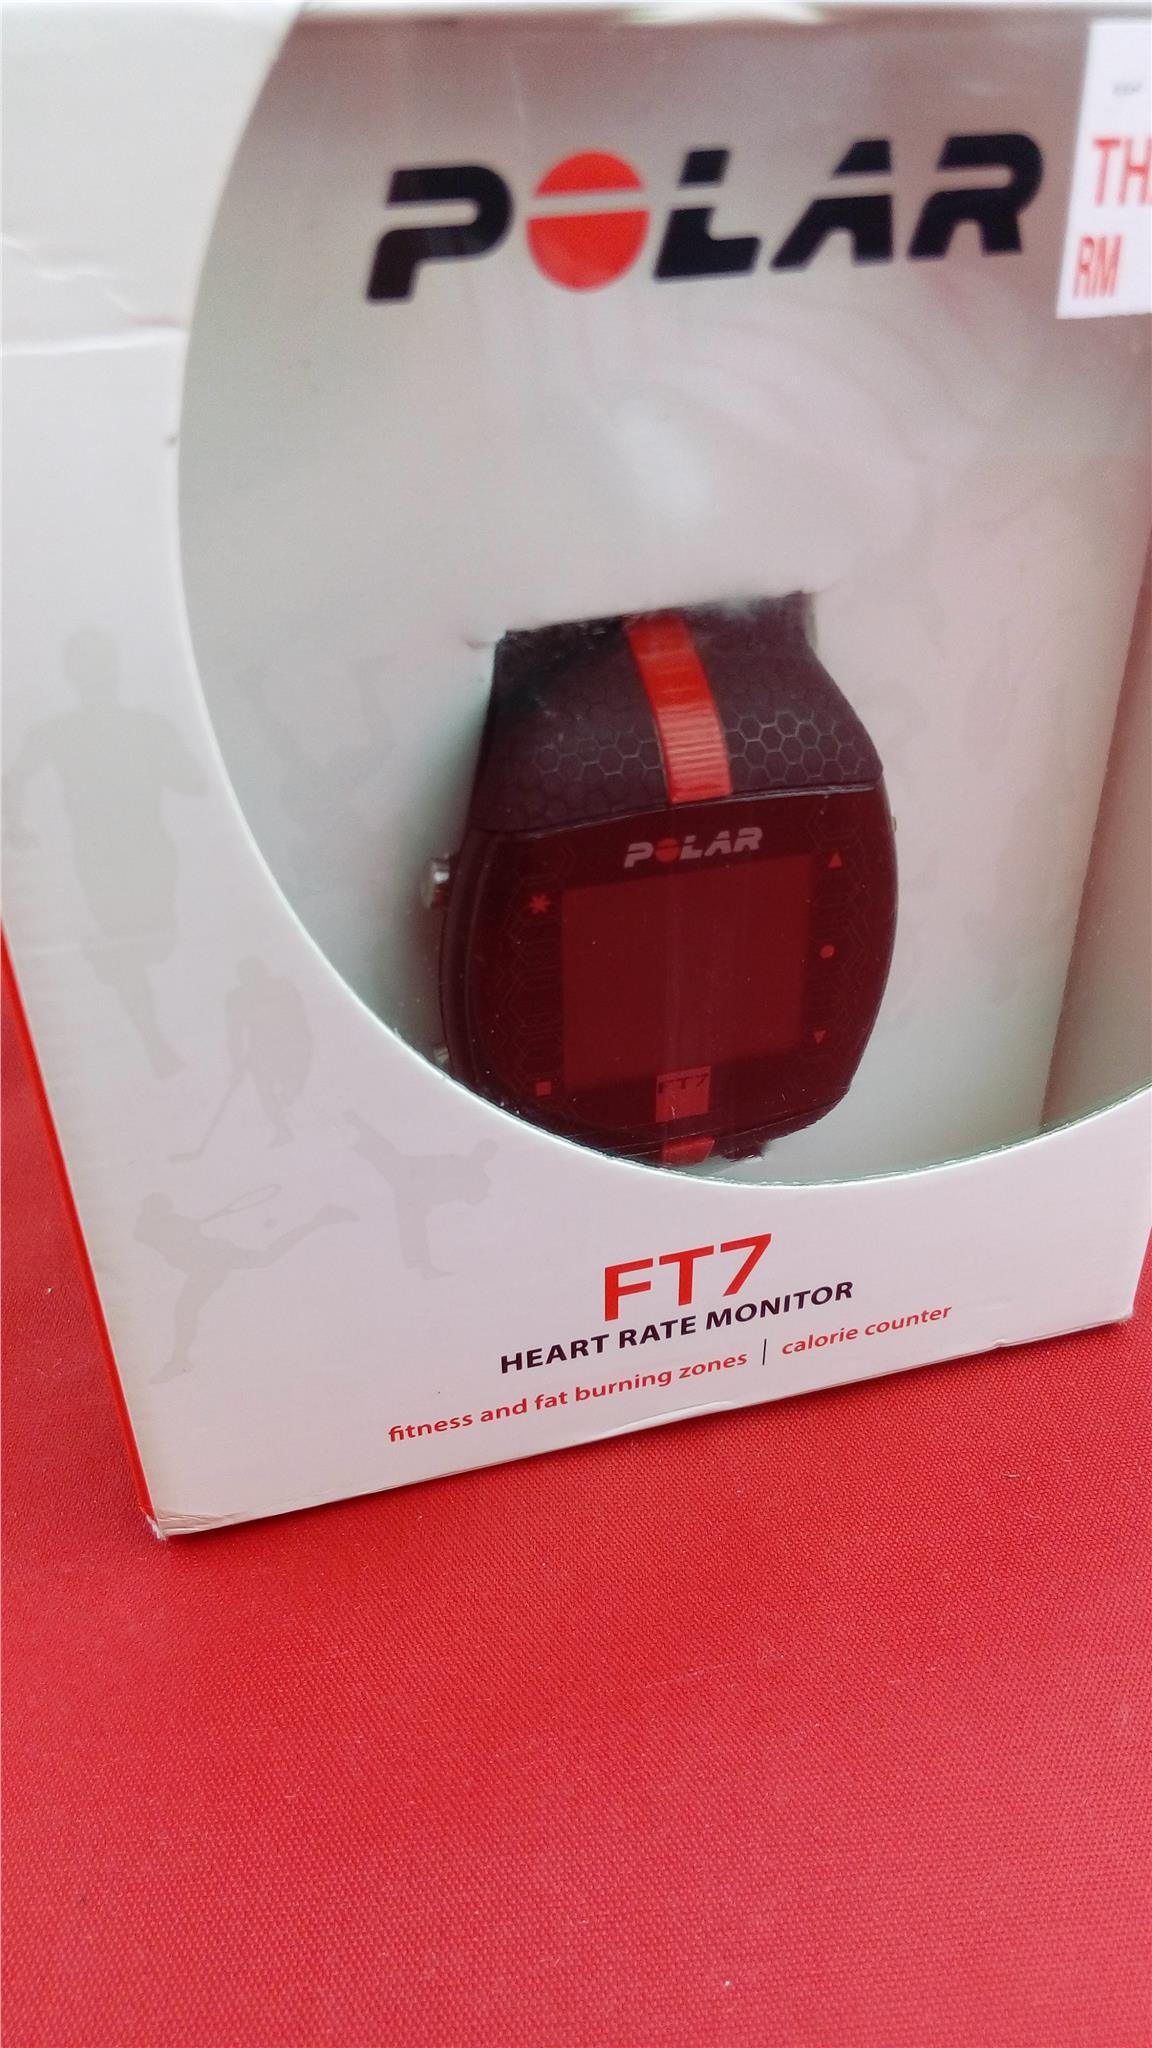 Polar Ft7 Heart Rate Monitor (Black/Red)